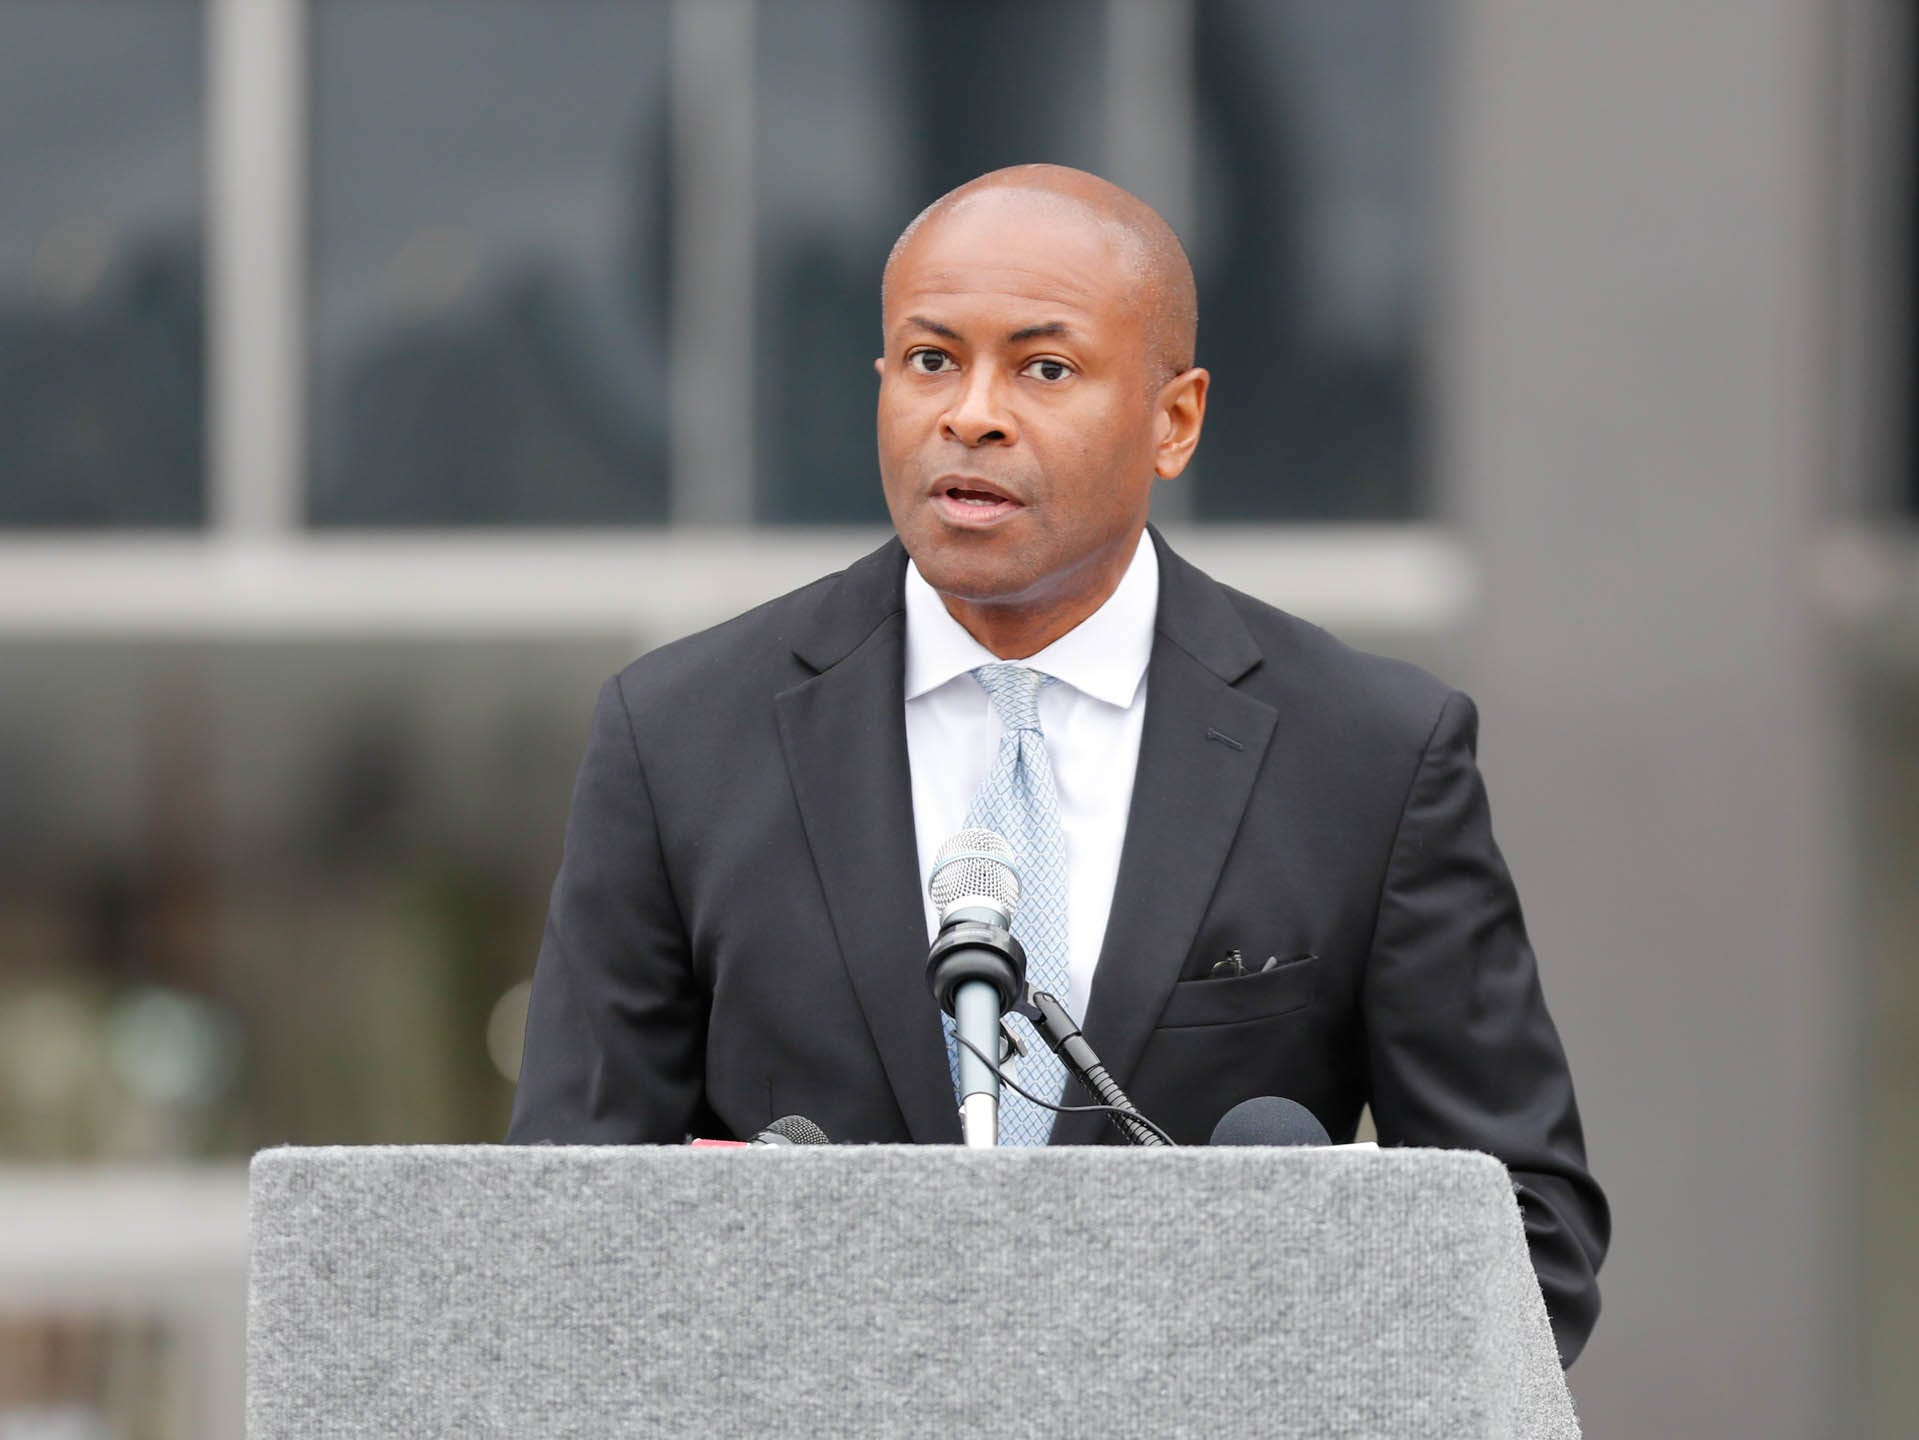 City-County Councilman Vop Osili speaks during the reopening and dedication of Richard G. Lugar Plaza at the City-County Building in Indianapolis on Thursday, Oct. 11, 2018.